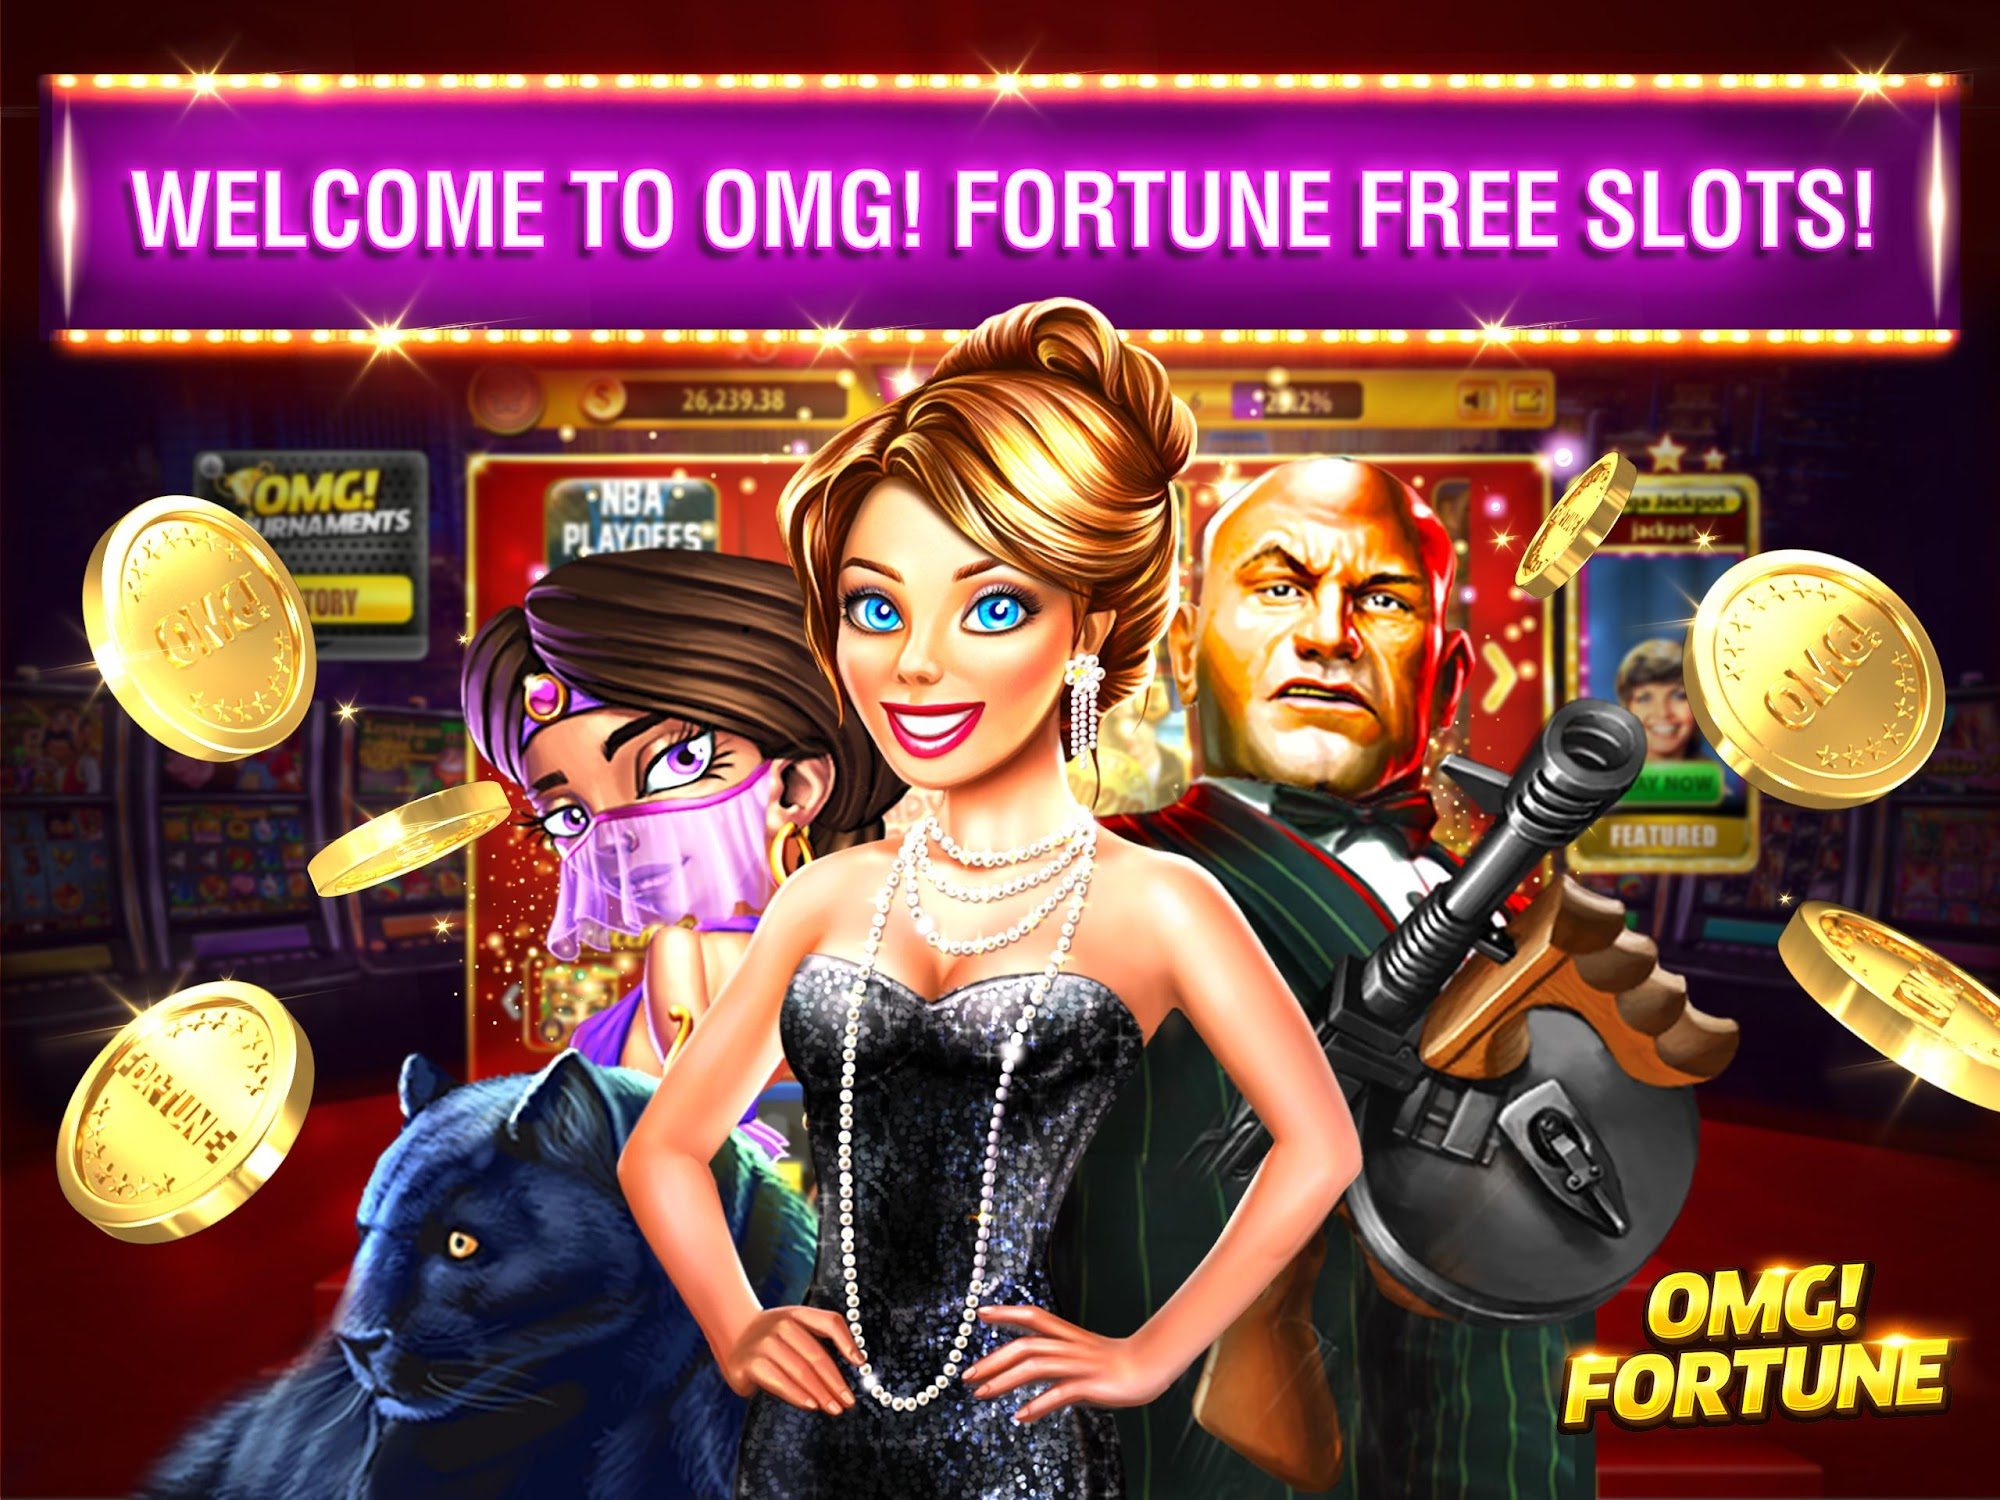 OMG! Fortune Free Slots Casino screenshot #6